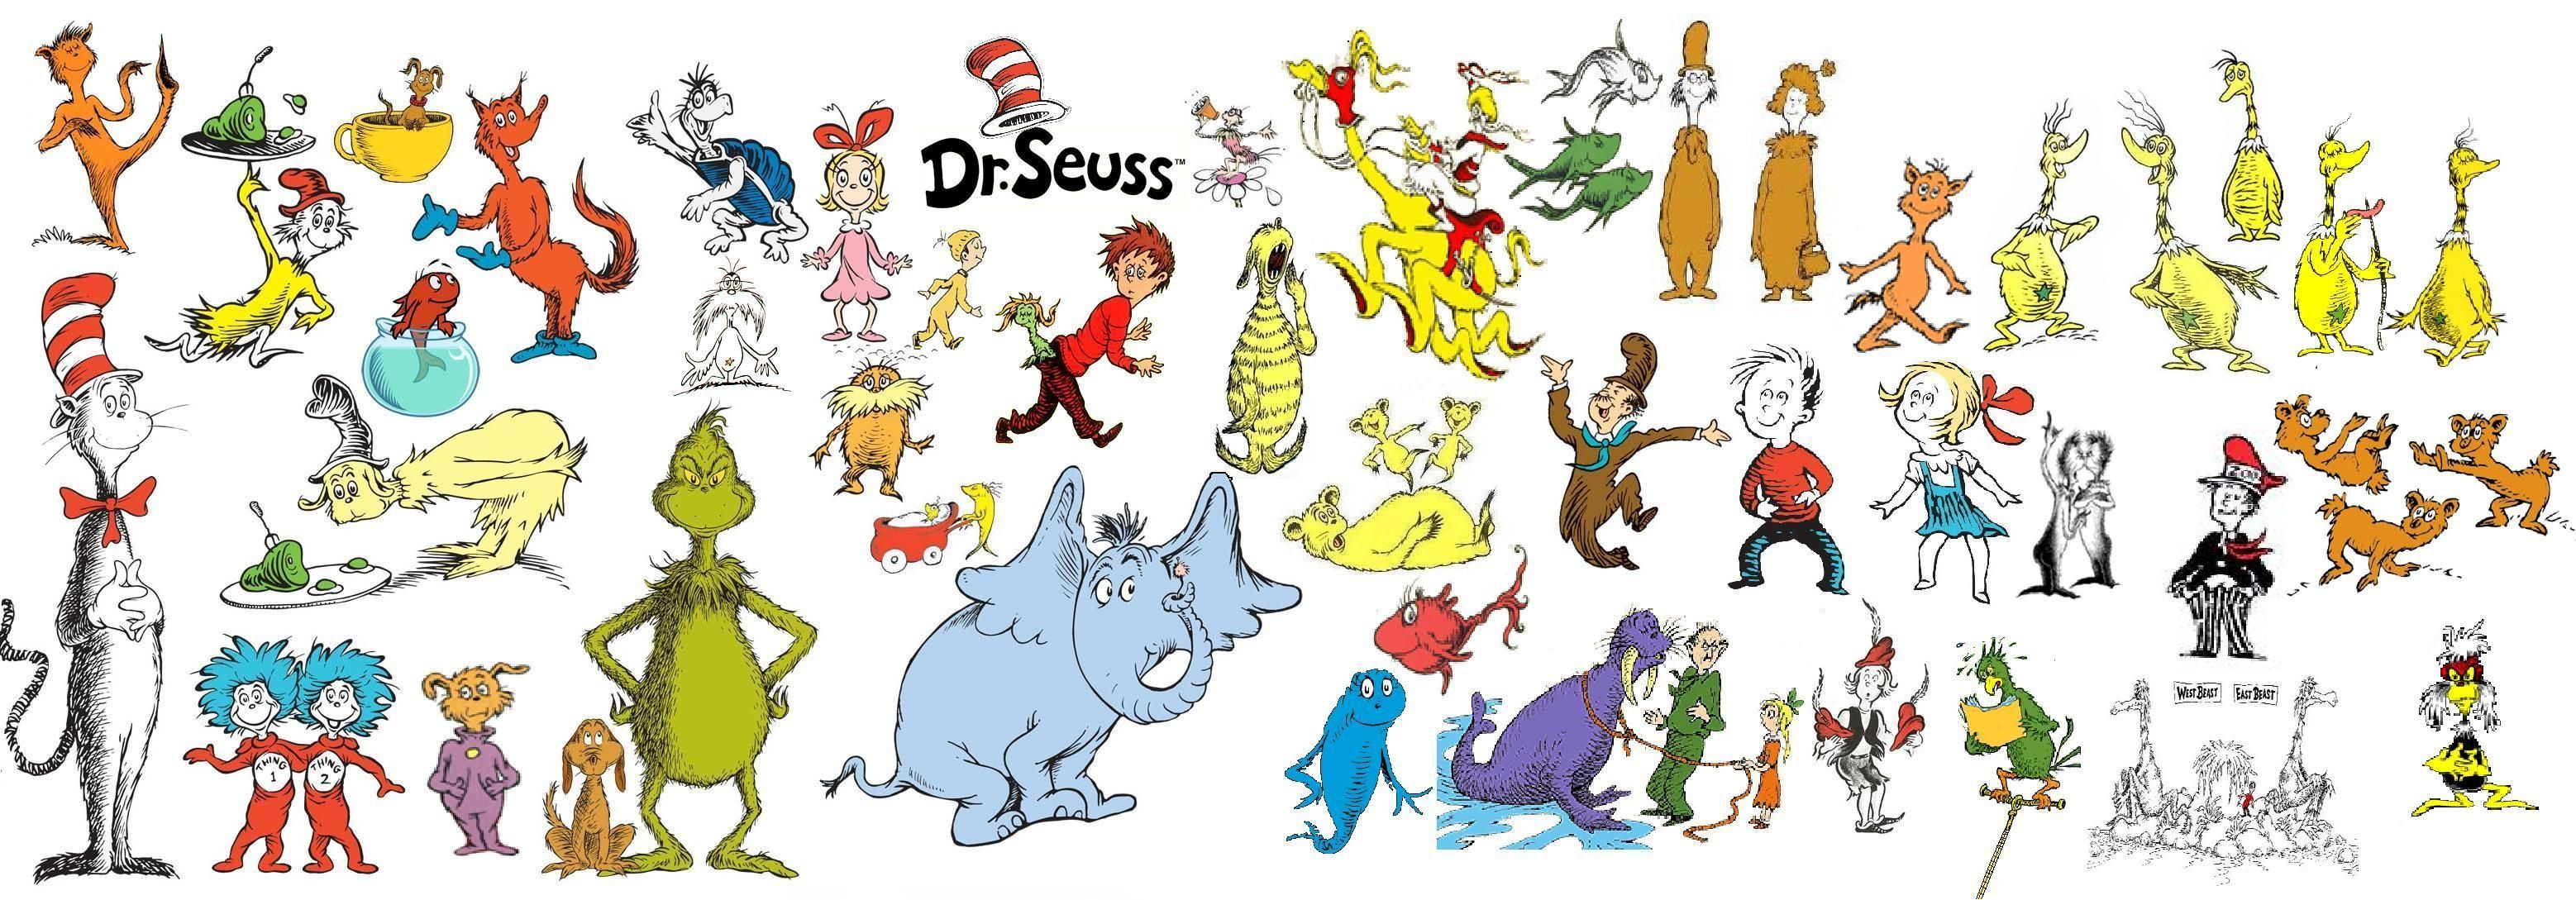 dr seuss quotes to live by